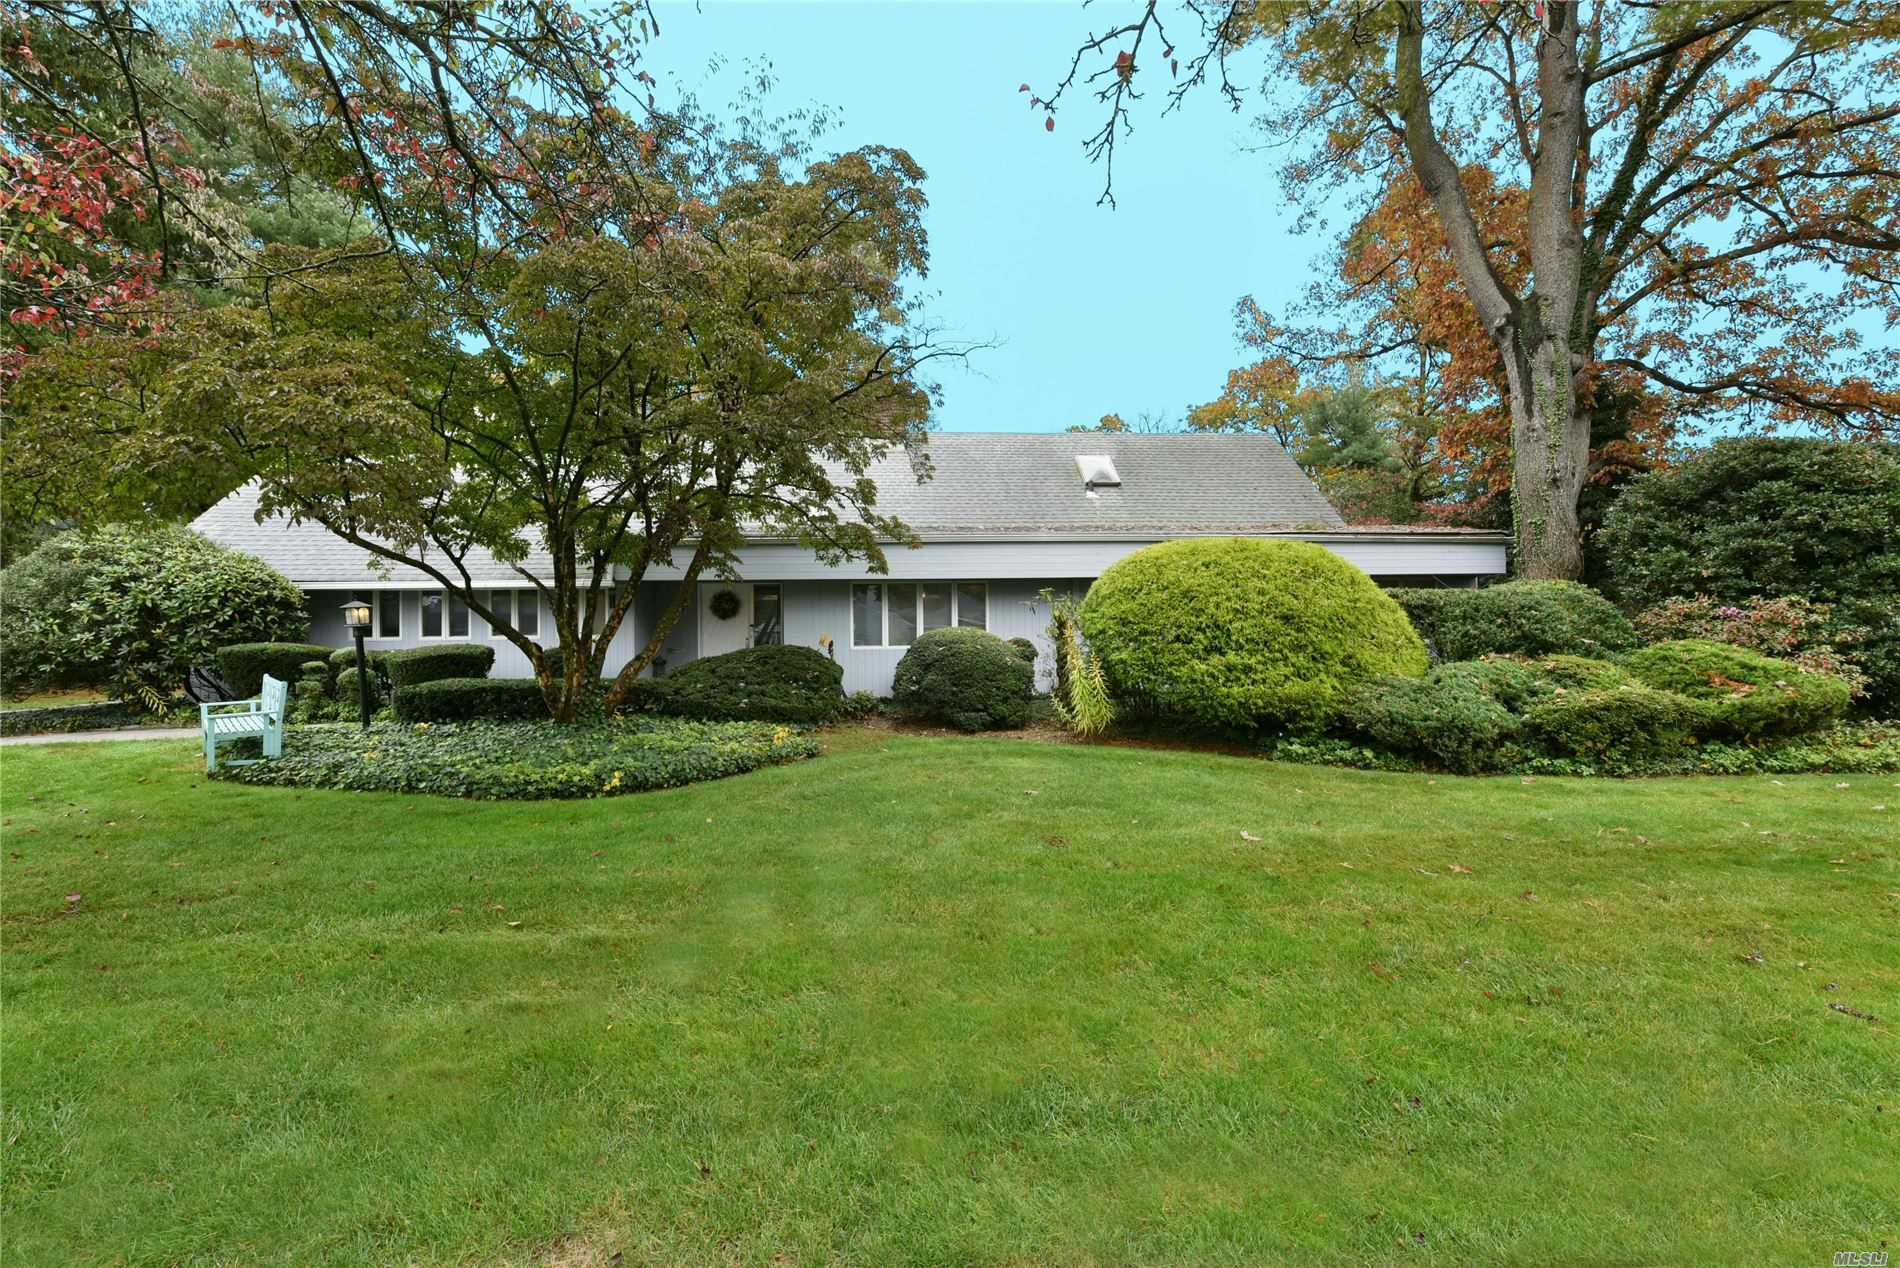 Property for sale at 201 Parkway Drive, Roslyn Heights NY 11577, Roslyn Heights,  New York 11577